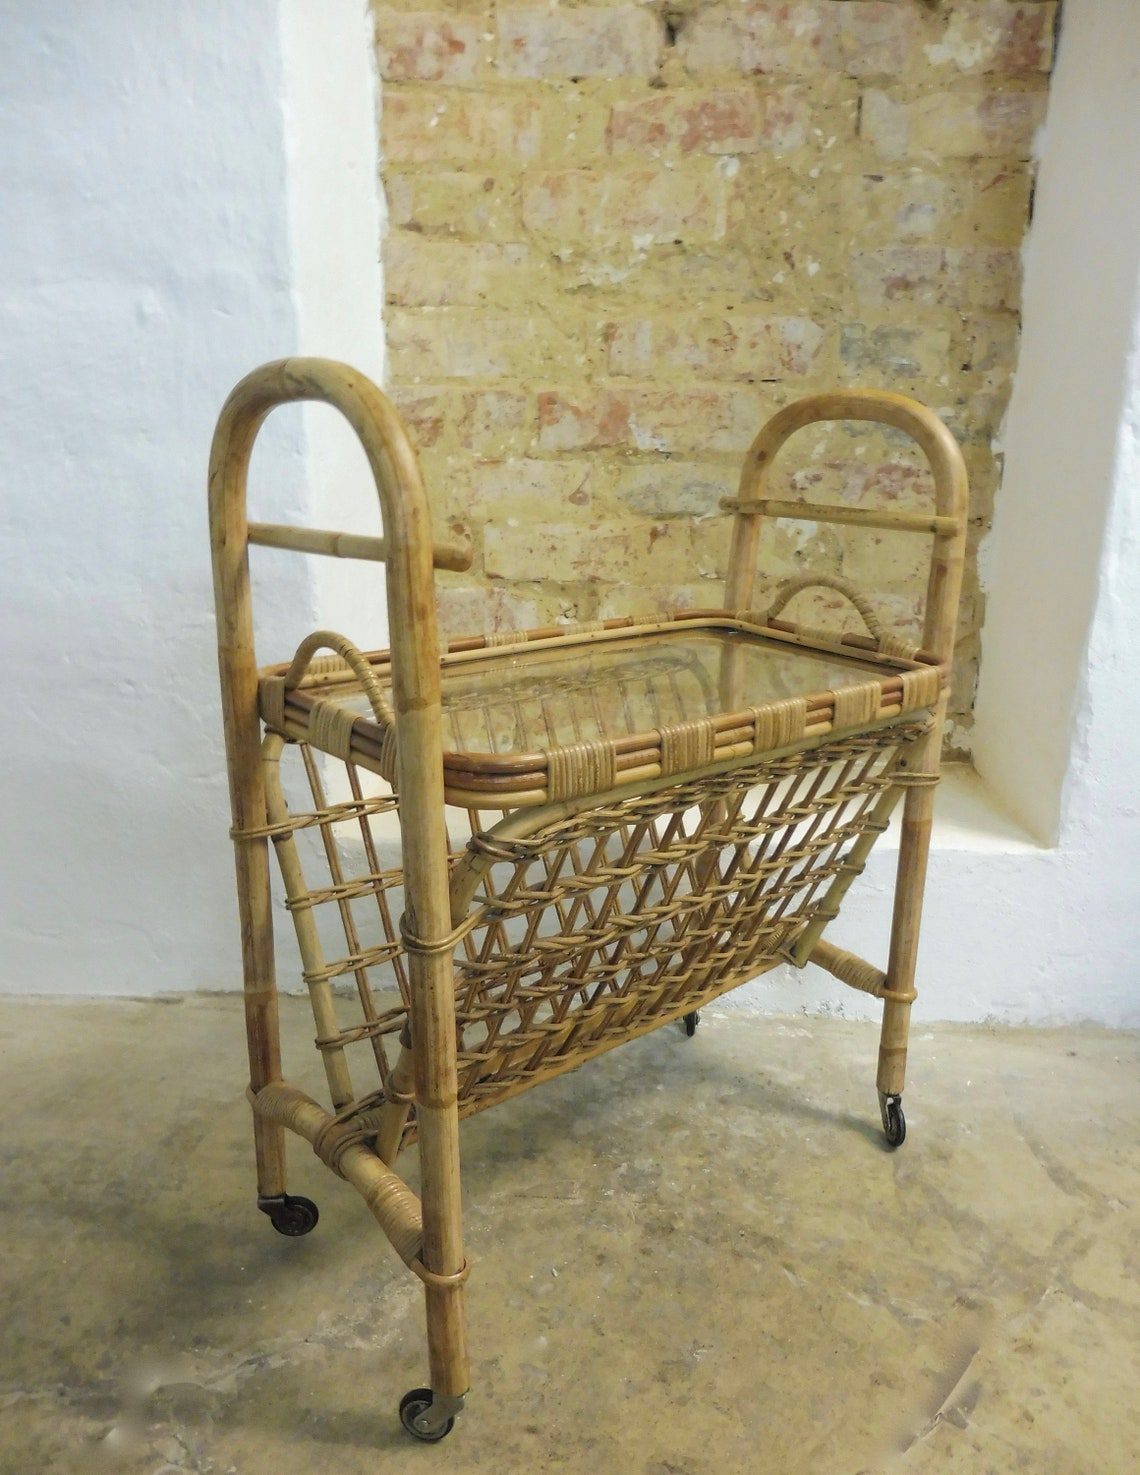 Exceptional rattan bamboo newspaper stand tray large trolley side table glass tray 50s 60s mid century vintage